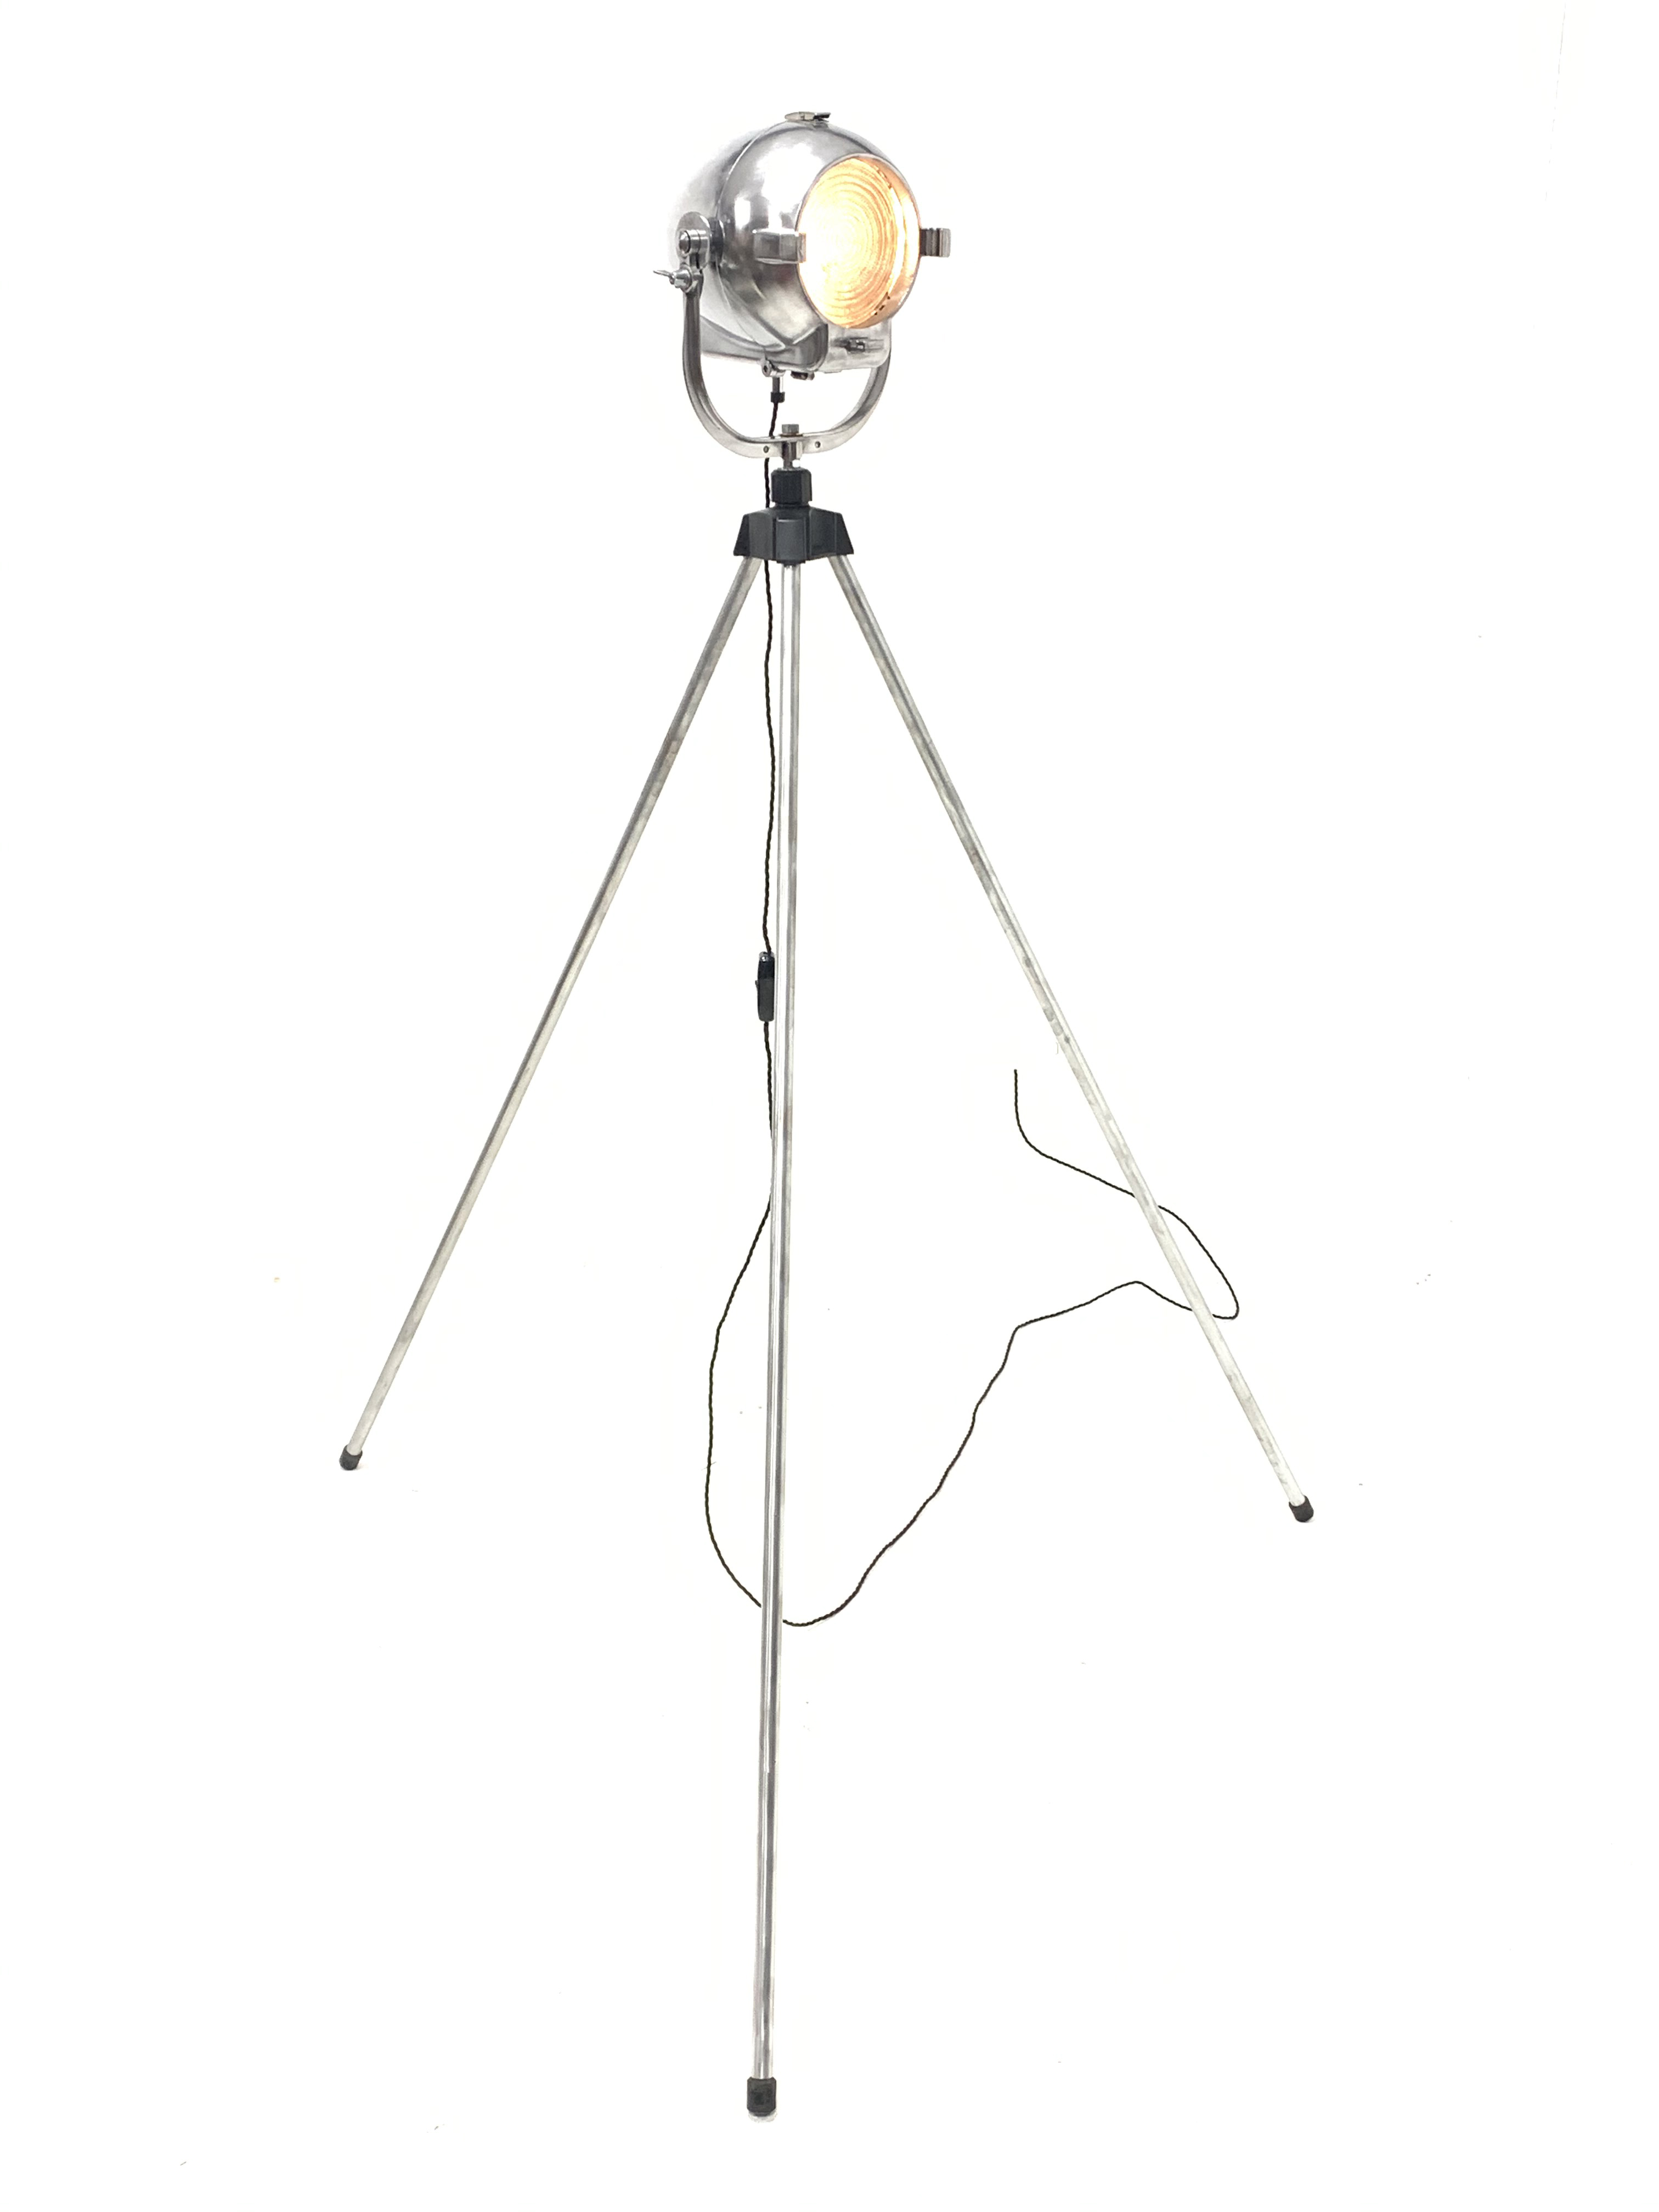 Mid 20th century 'Rank Strand' polished alloy stage light mounted on tripod base, H169cm, shipping